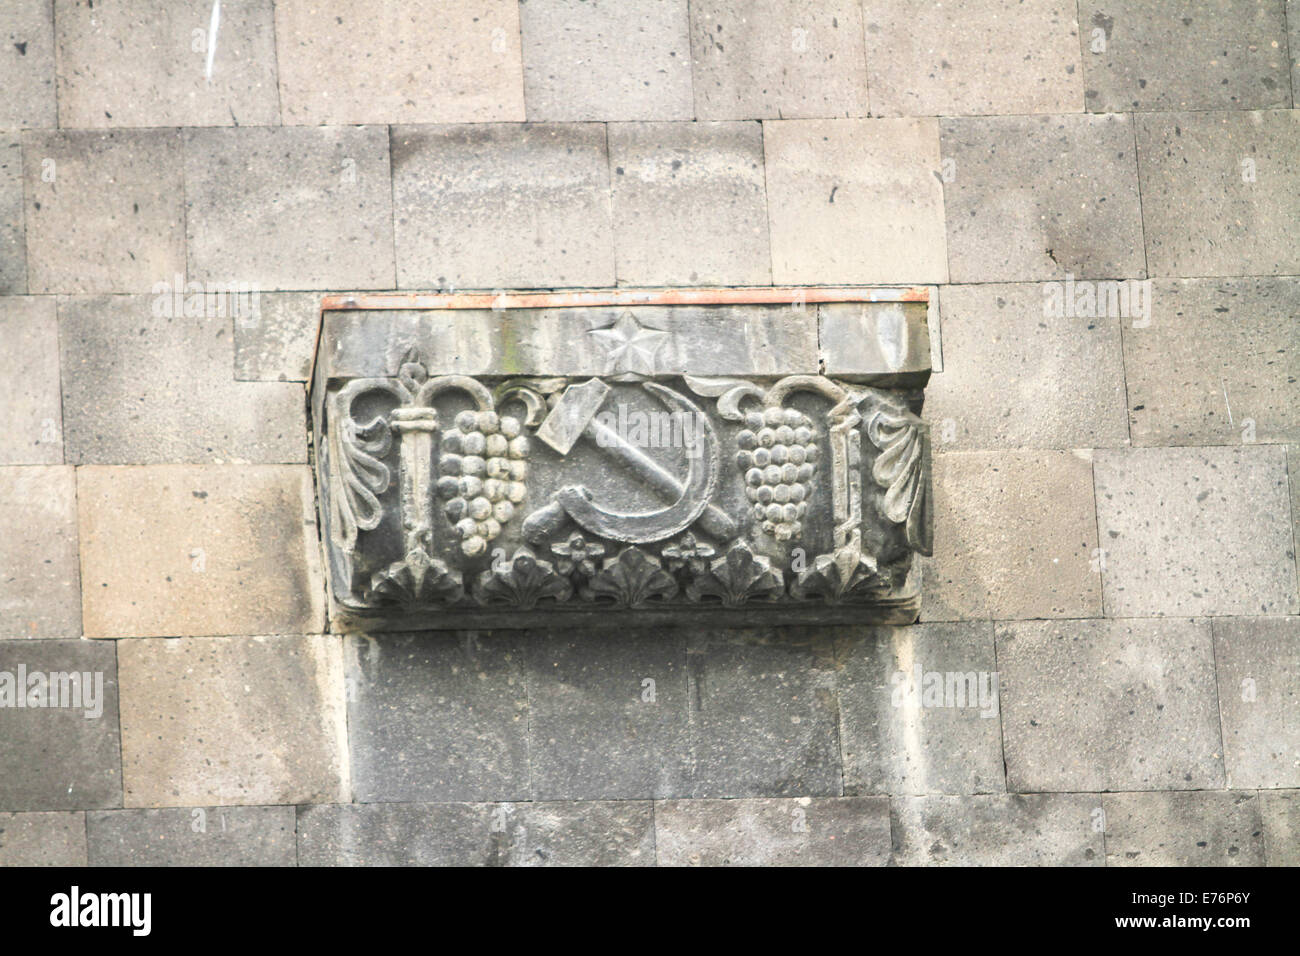 hammer and sickle detail on Mother Armenia statue at Victory Park, Yerevan, Armenia - Stock Image